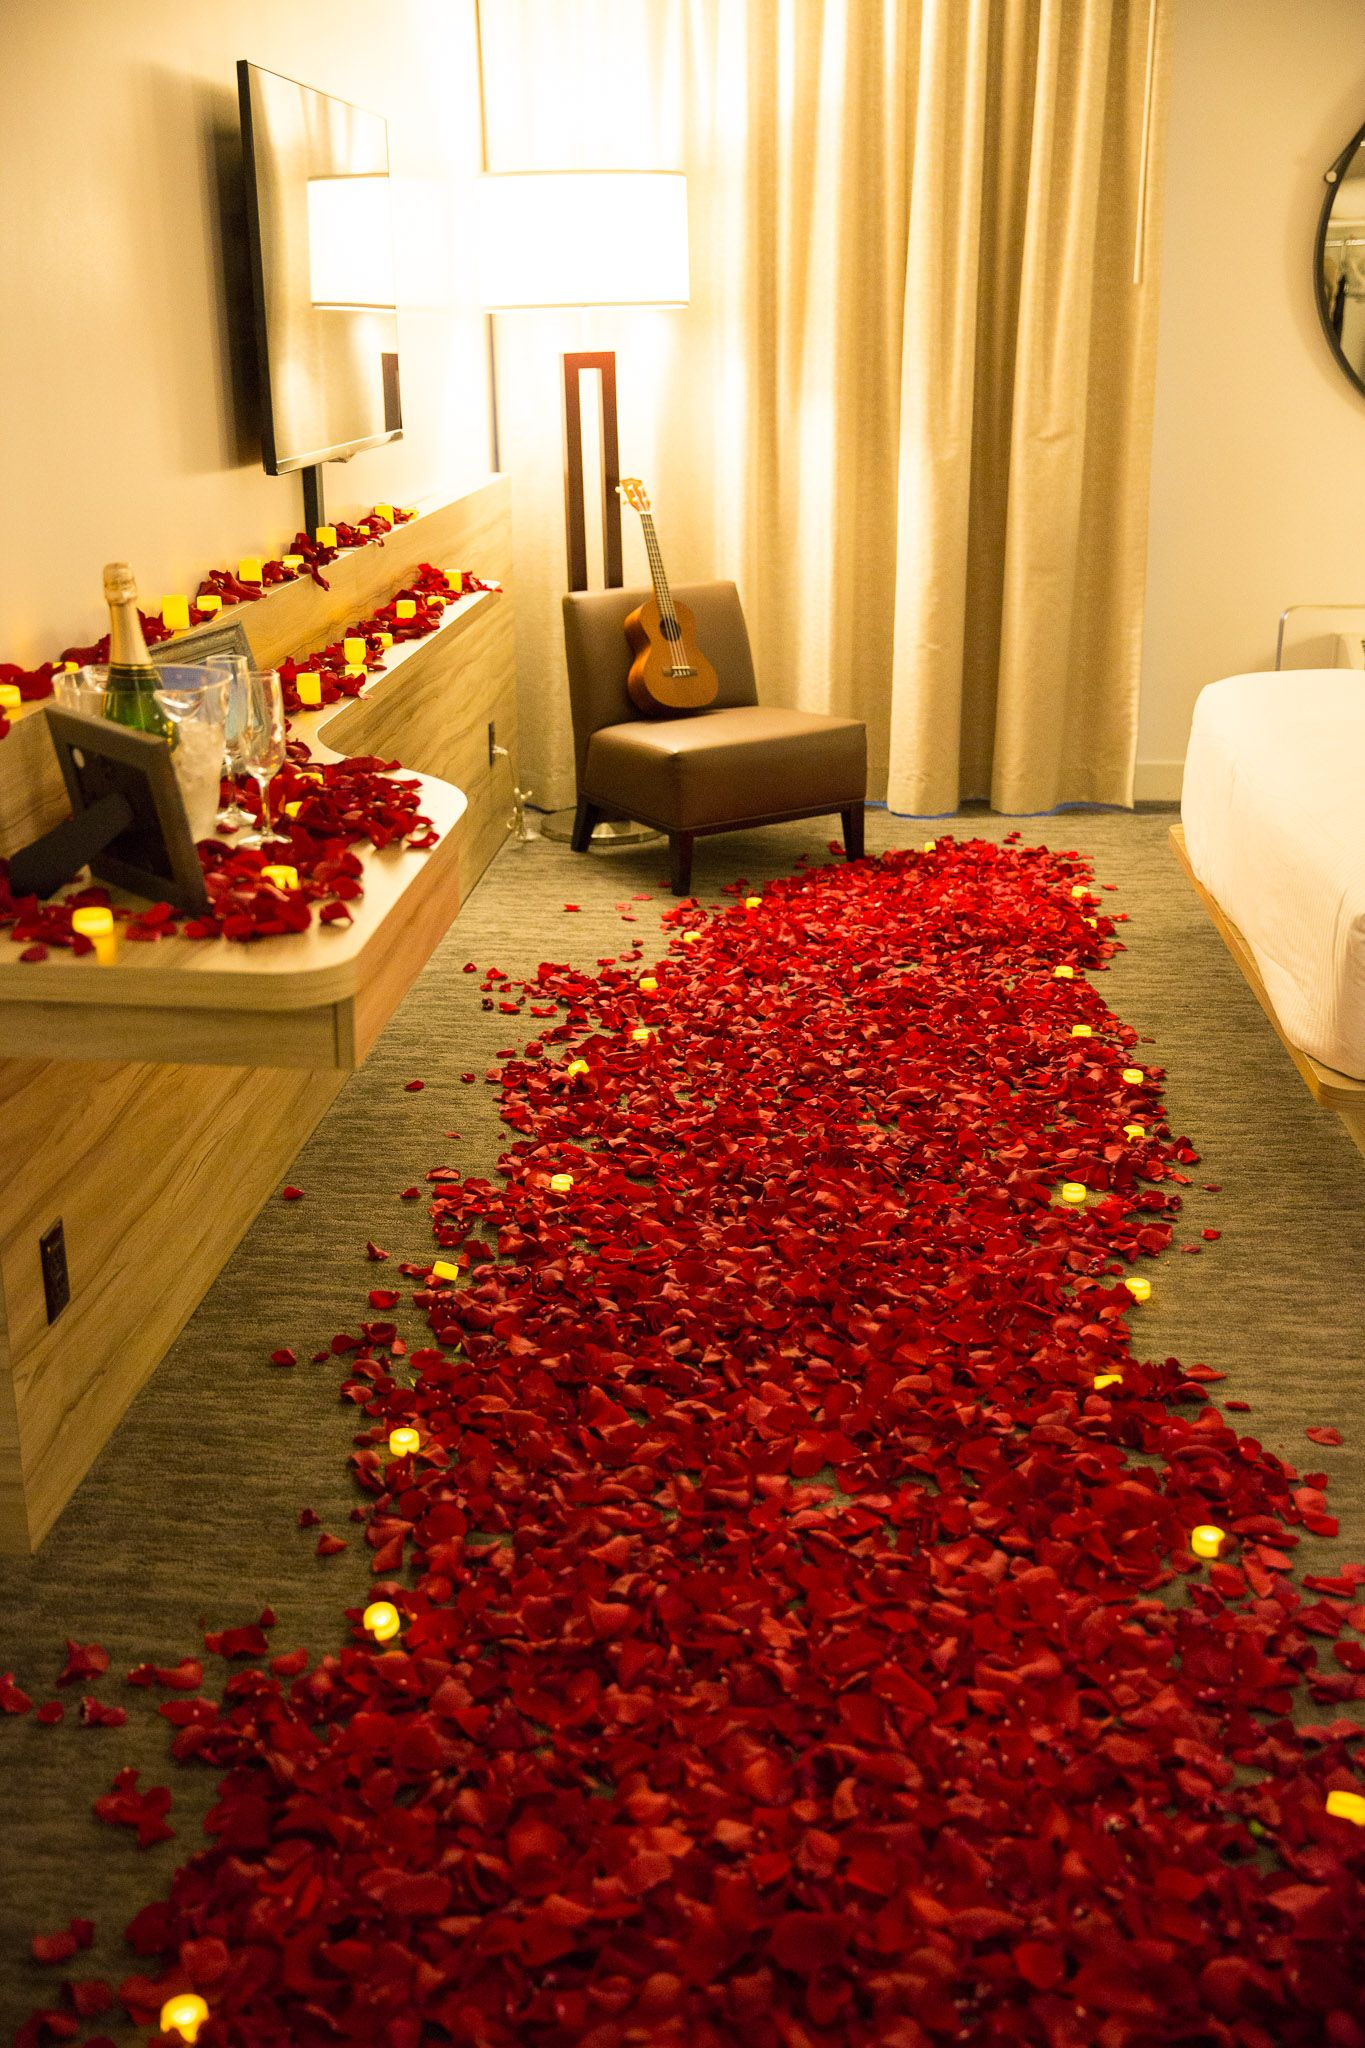 How To Decorate A Hotel Room For Boyfriend Birthday With Images Romantic Room Decoration Birthday Surprise Boyfriend Romantic Room Surprise